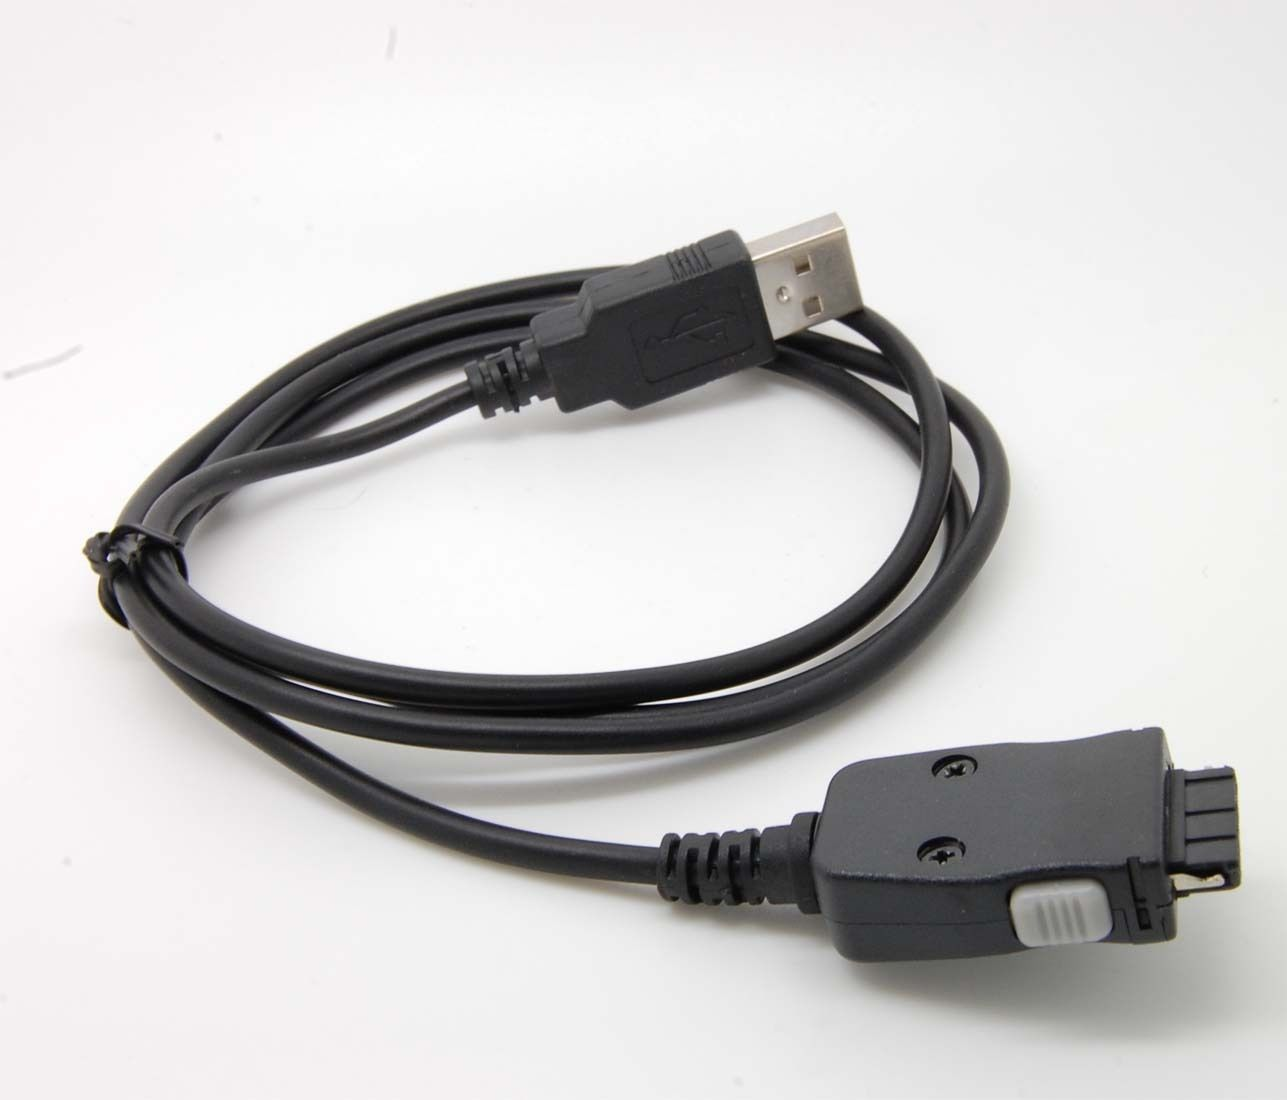 USB DATA&CHARGER Cable for Samsung YP-K3 YP-K5J YP-T8 YP-T10 YP-S3 YP-Q1 YP-P2 YP-K3J T8A S3J Q1AB yp-P3 YP-K5 YP-T9 YP-S5 долото острое hilti te yp sm 50